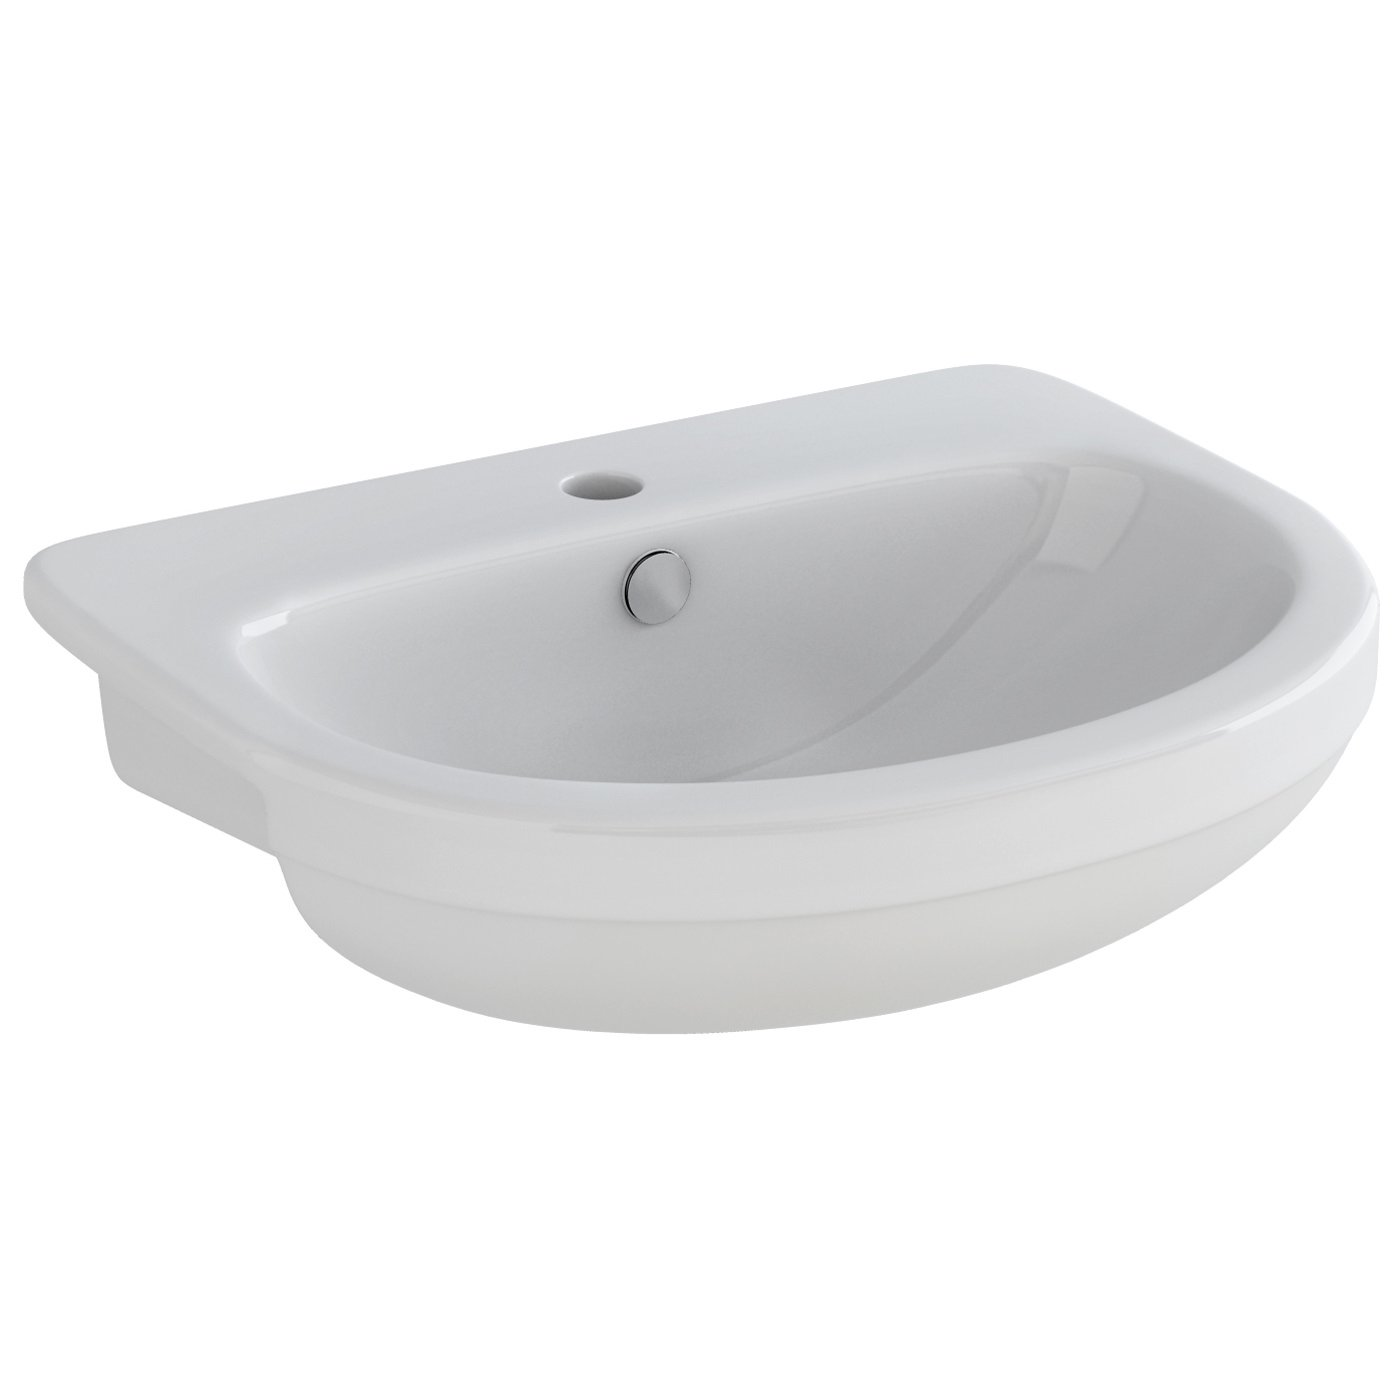 Pura Ivo 1 Tap Hole 550mm Semi Countertop Basin